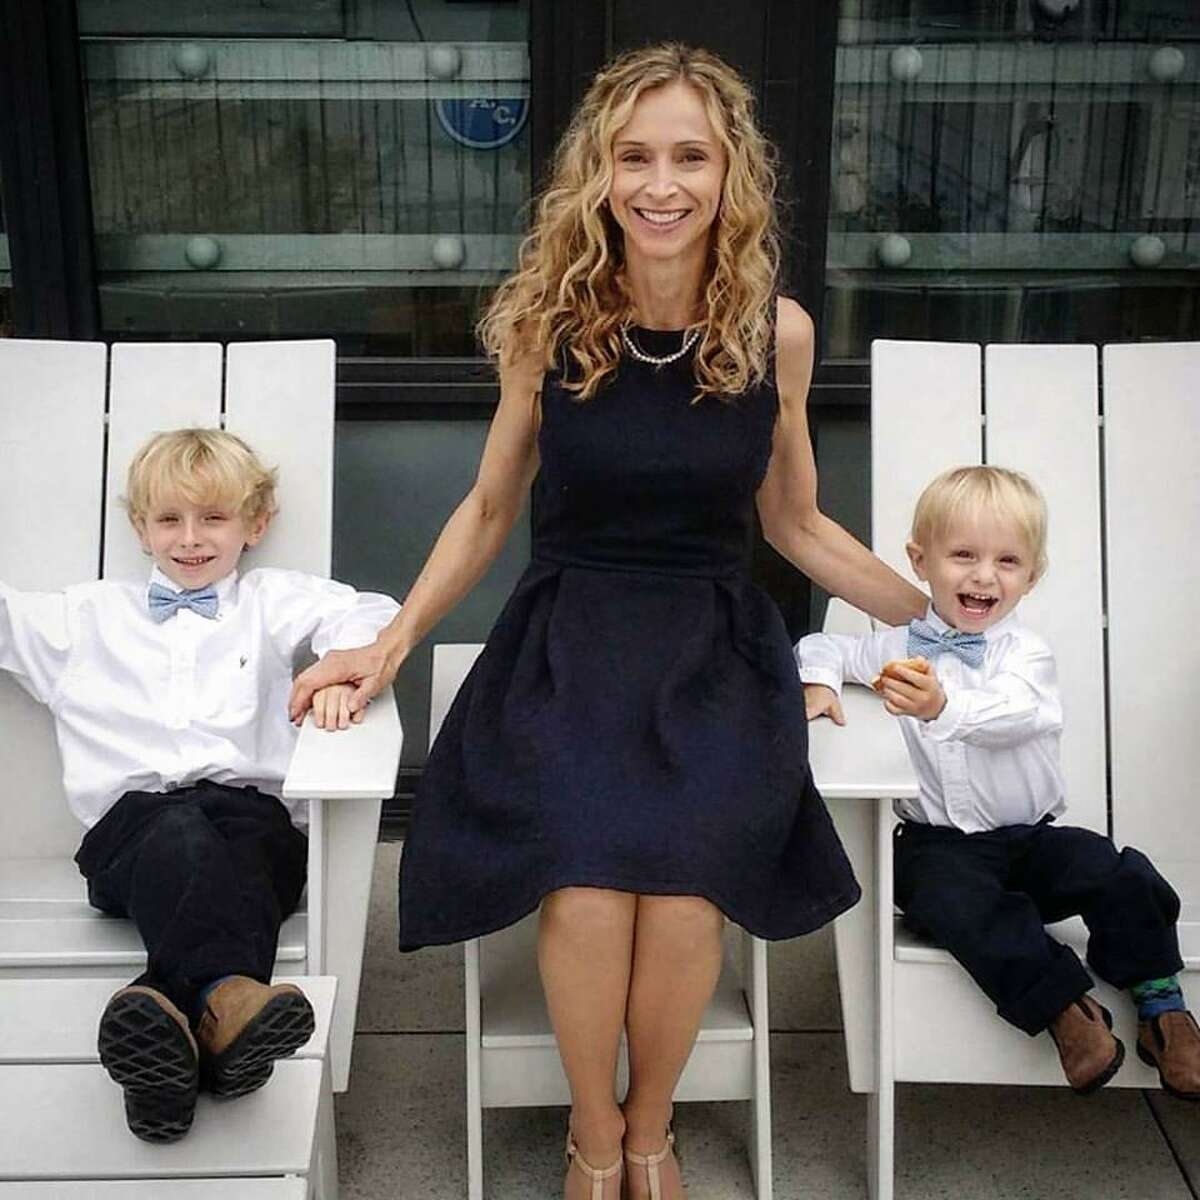 Author Sara Goff, of Westport, with her two young sons.